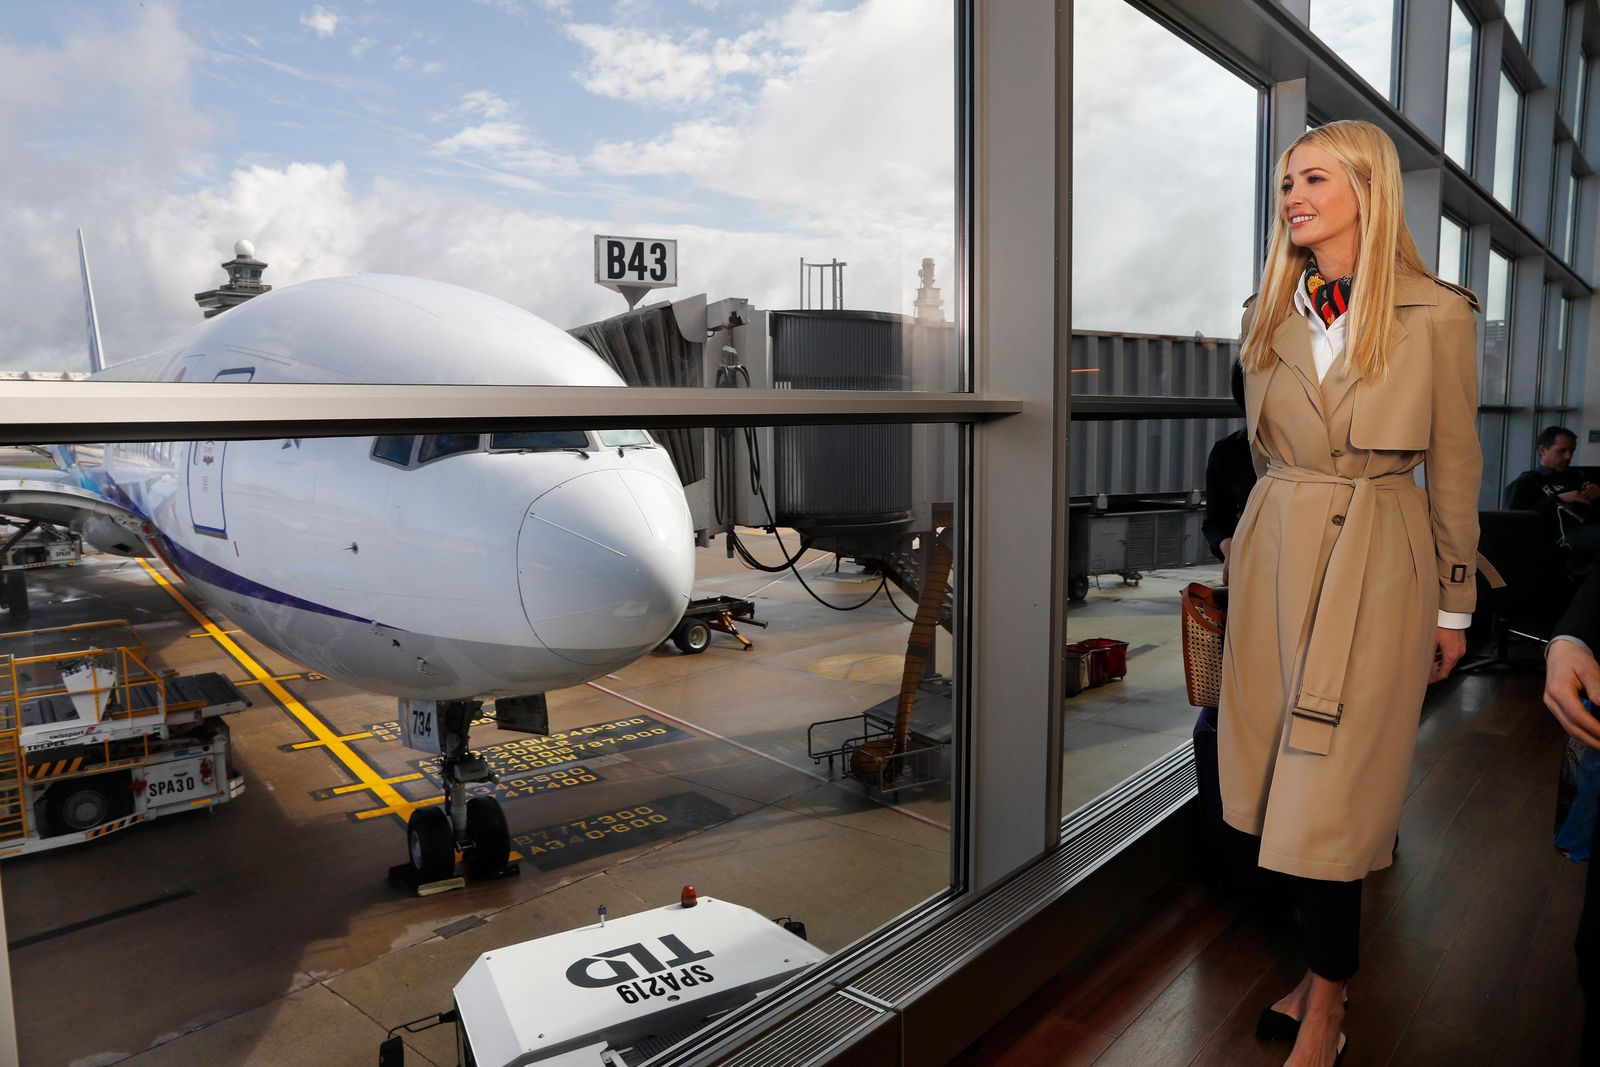 White House senior adviser Ivanka Trump walks past an airplane as she leaves an airport lounge before boarding a commercial flight from Dulles International Airport, in Sterling, Va., Saturday April 13, 2019, en route to Ethiopia. Trump will travel to Ethiopia and Ivory Coast to promote a global economical program for women. (AP Photo/Jacquelyn Martin)